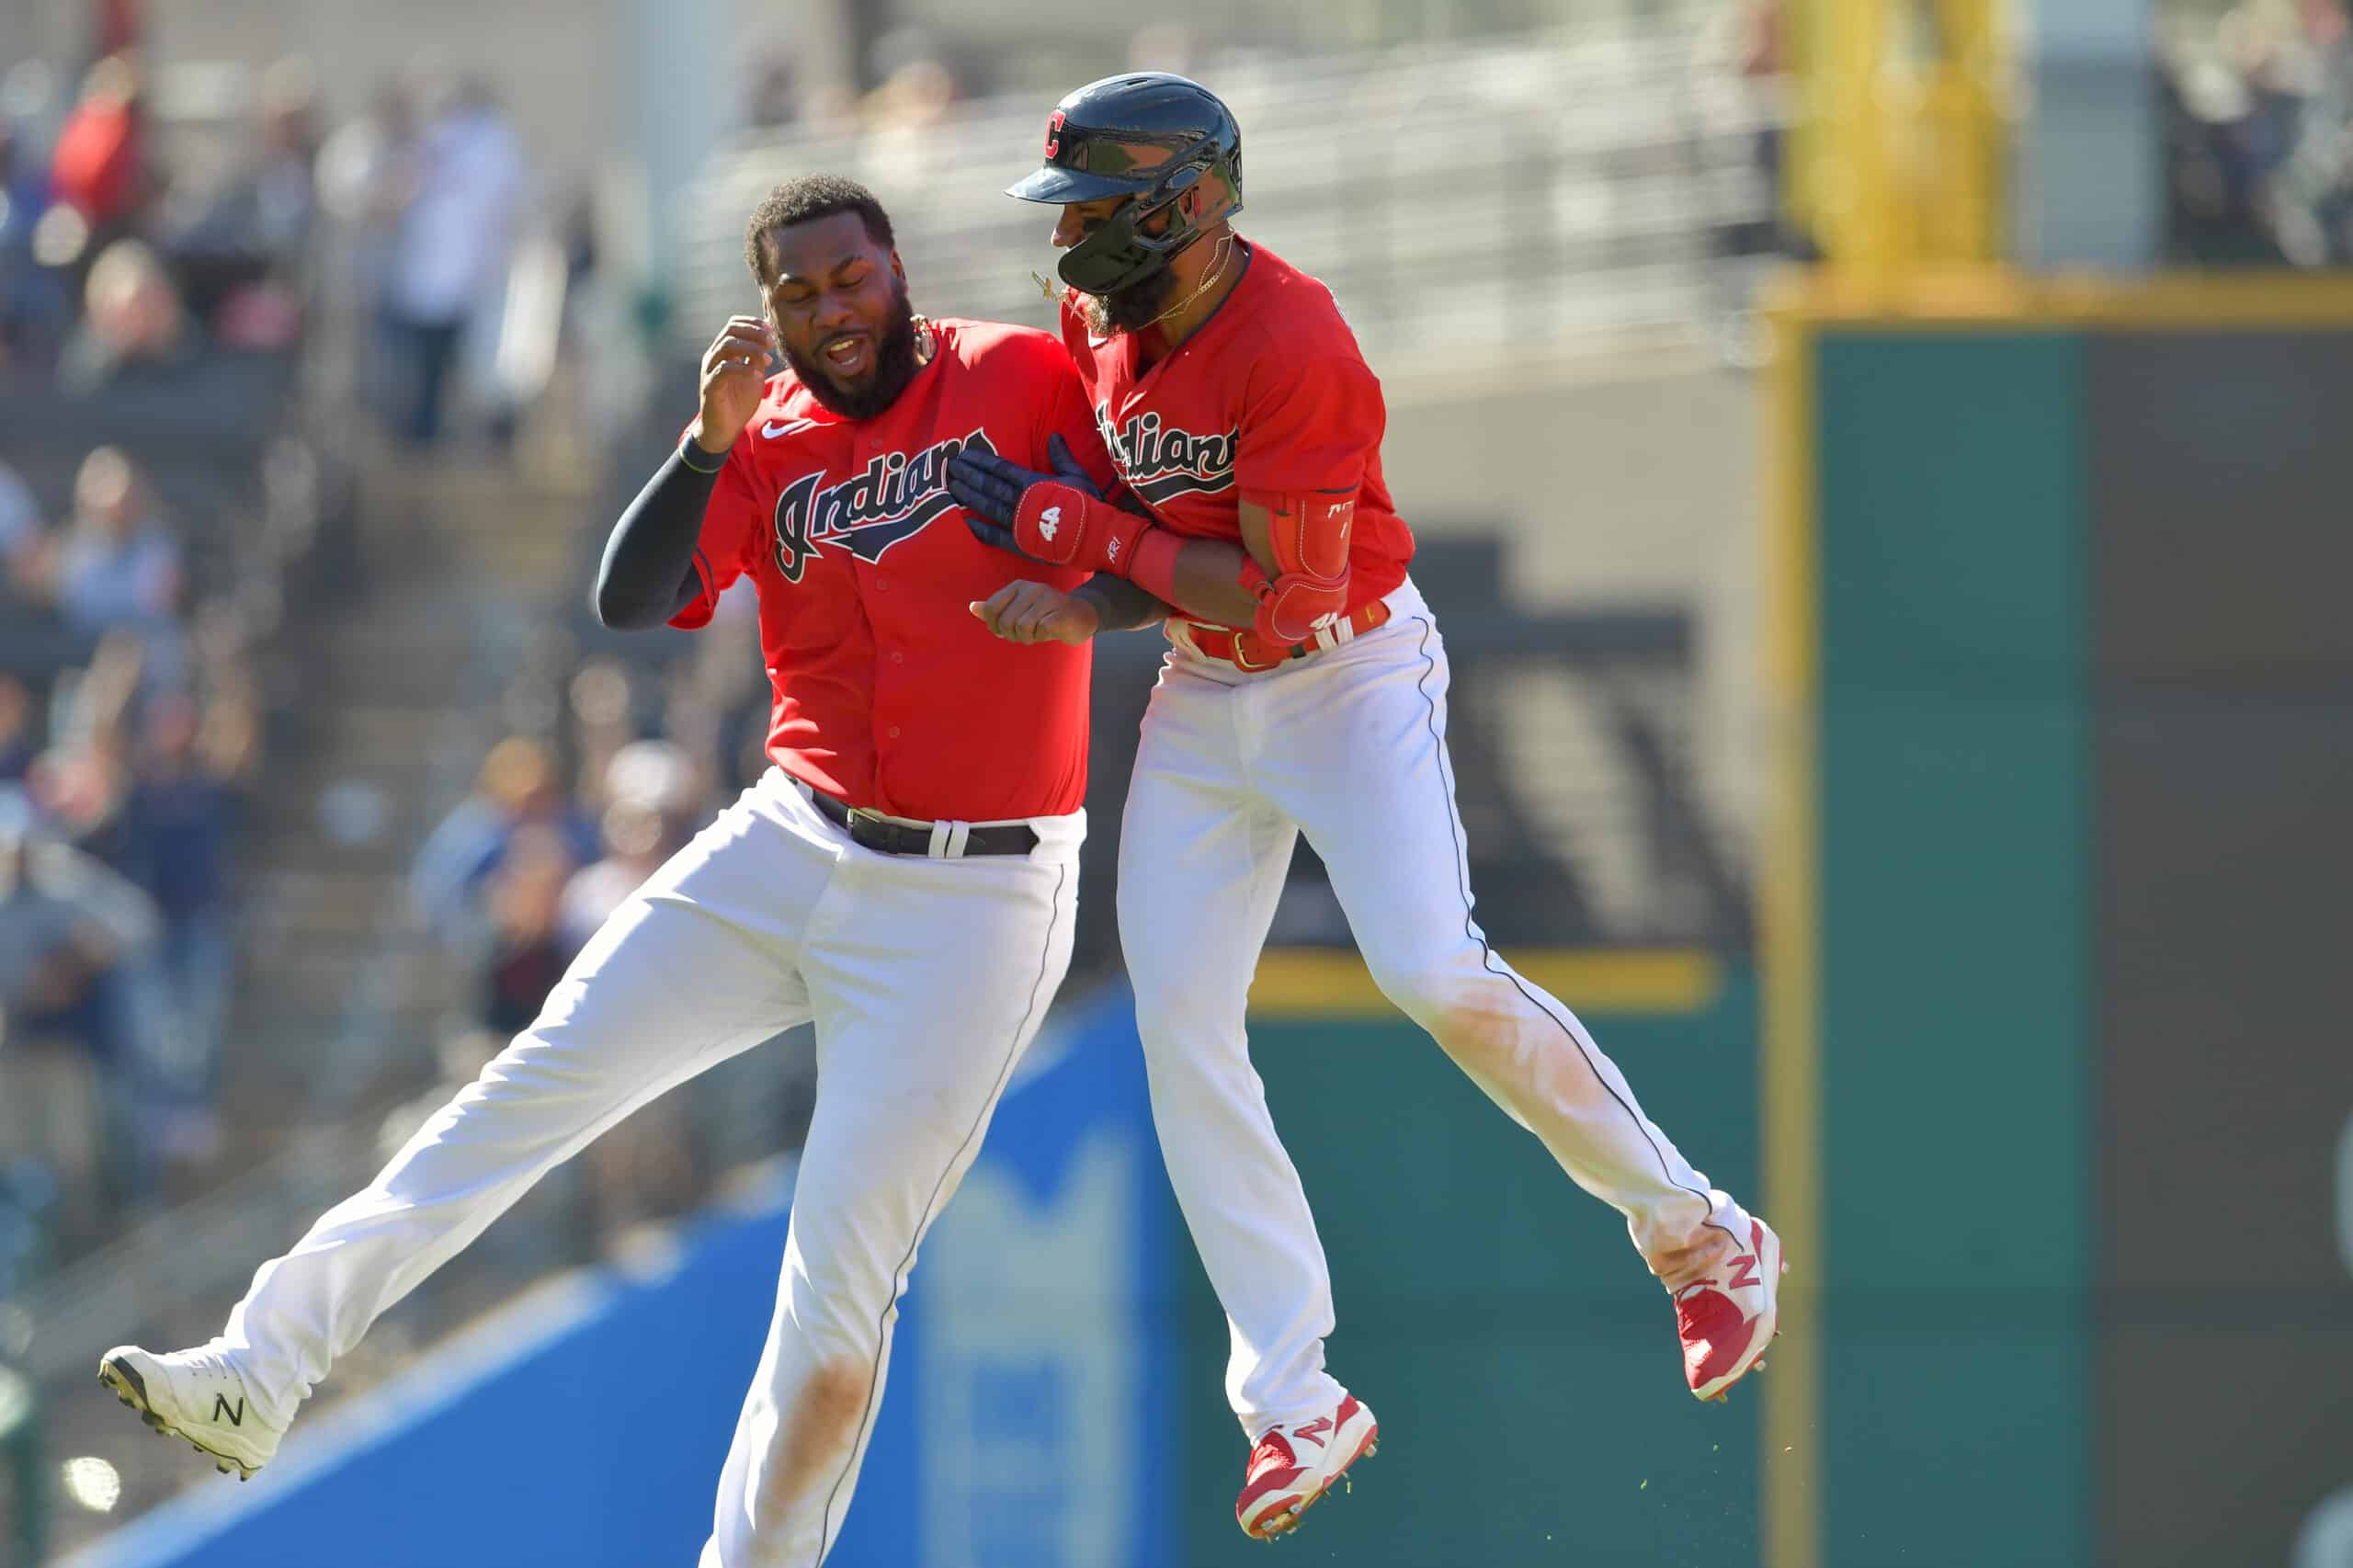 Franmil Reyes #32 celebrates with Amed Rosario #1 of the Cleveland Indians after Rosario hit a walk-off RBI single to defeat the Chicago Cubs at Progressive Field on May 12, 2021 in Cleveland, Ohio. The Indians defeated the Cubs 2-1 in 10 innings.